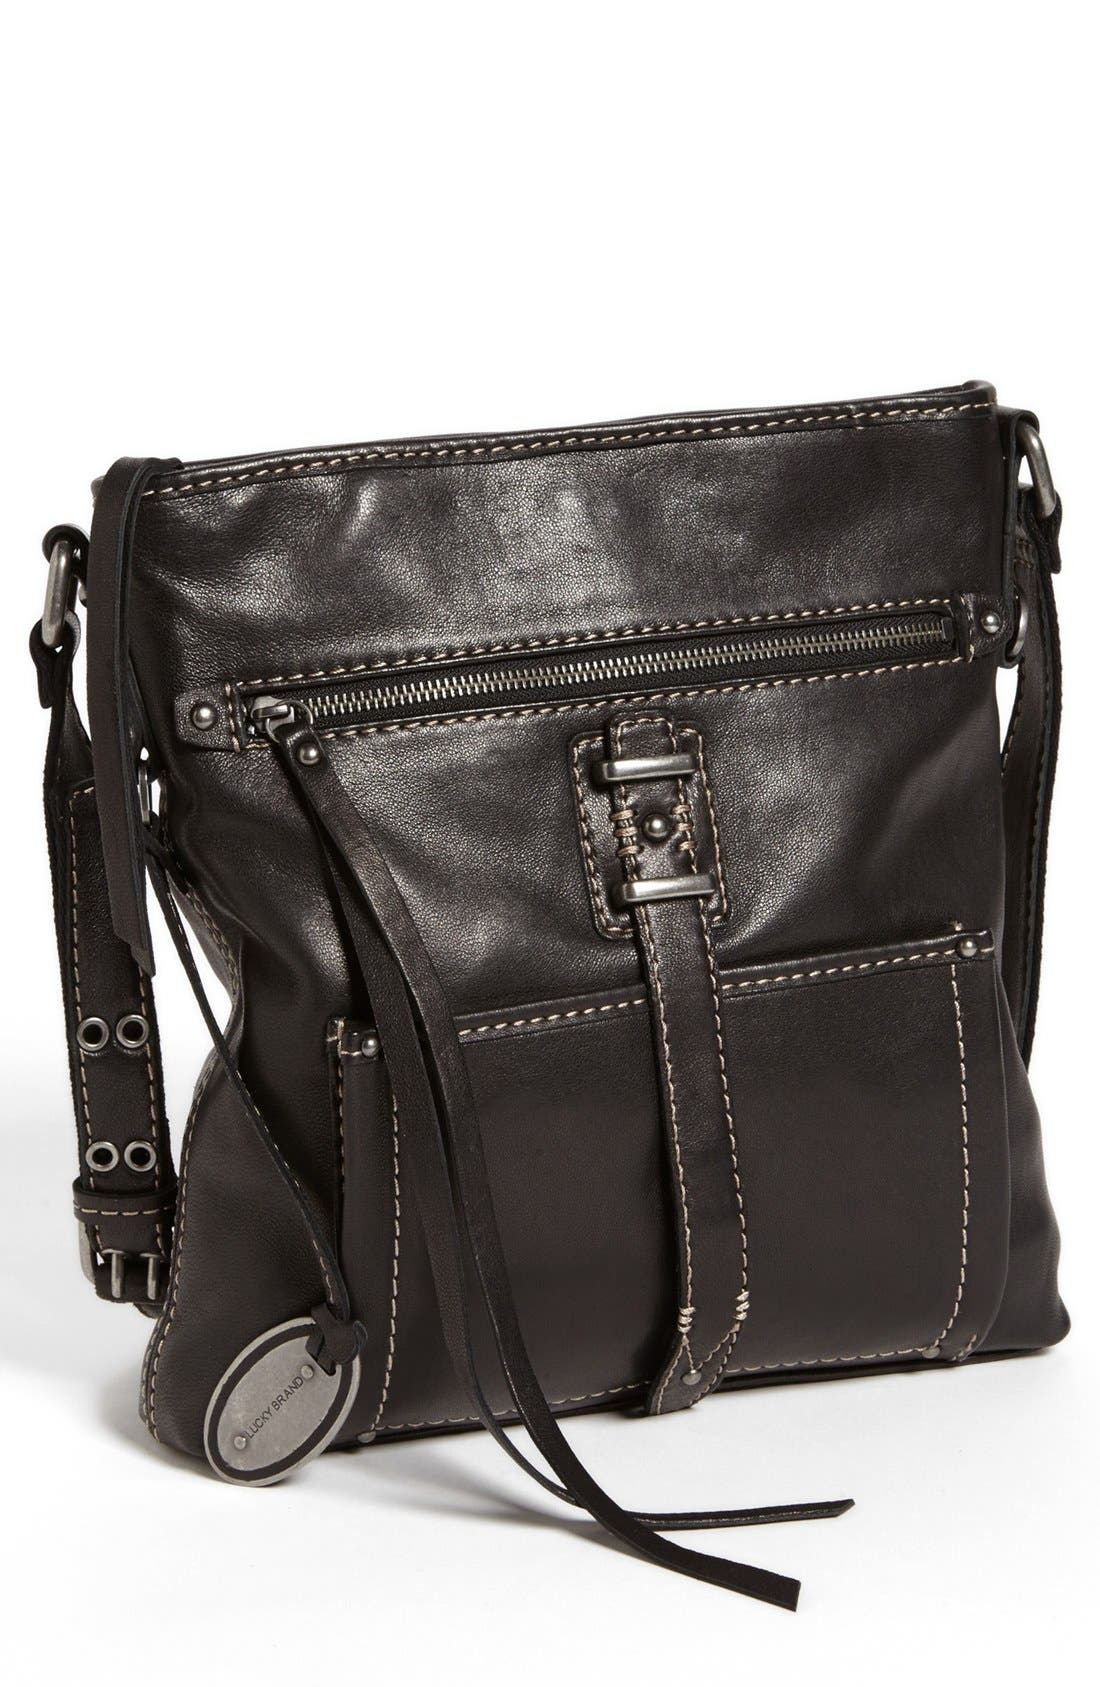 Alternate Image 1 Selected - Lucky Brand 'Large Ashley' Crossbody Bag